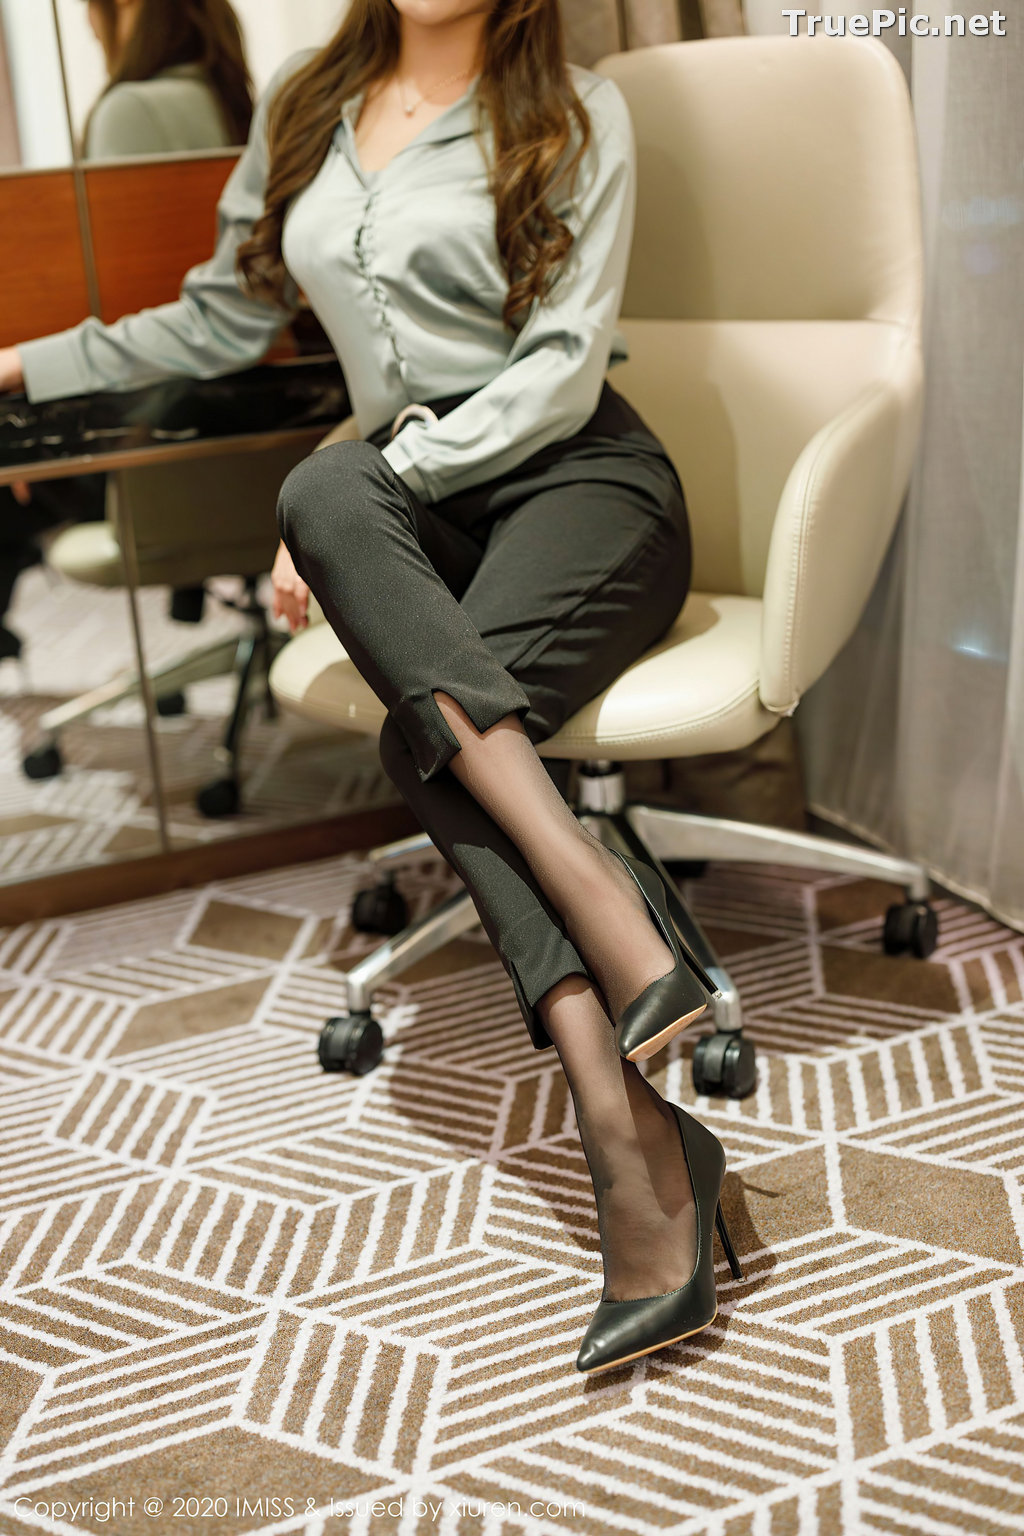 Image IMISS Vol.492 - Chinese Model - Lavinia肉肉 - Long Legs Office Girl - TruePic.net - Picture-2